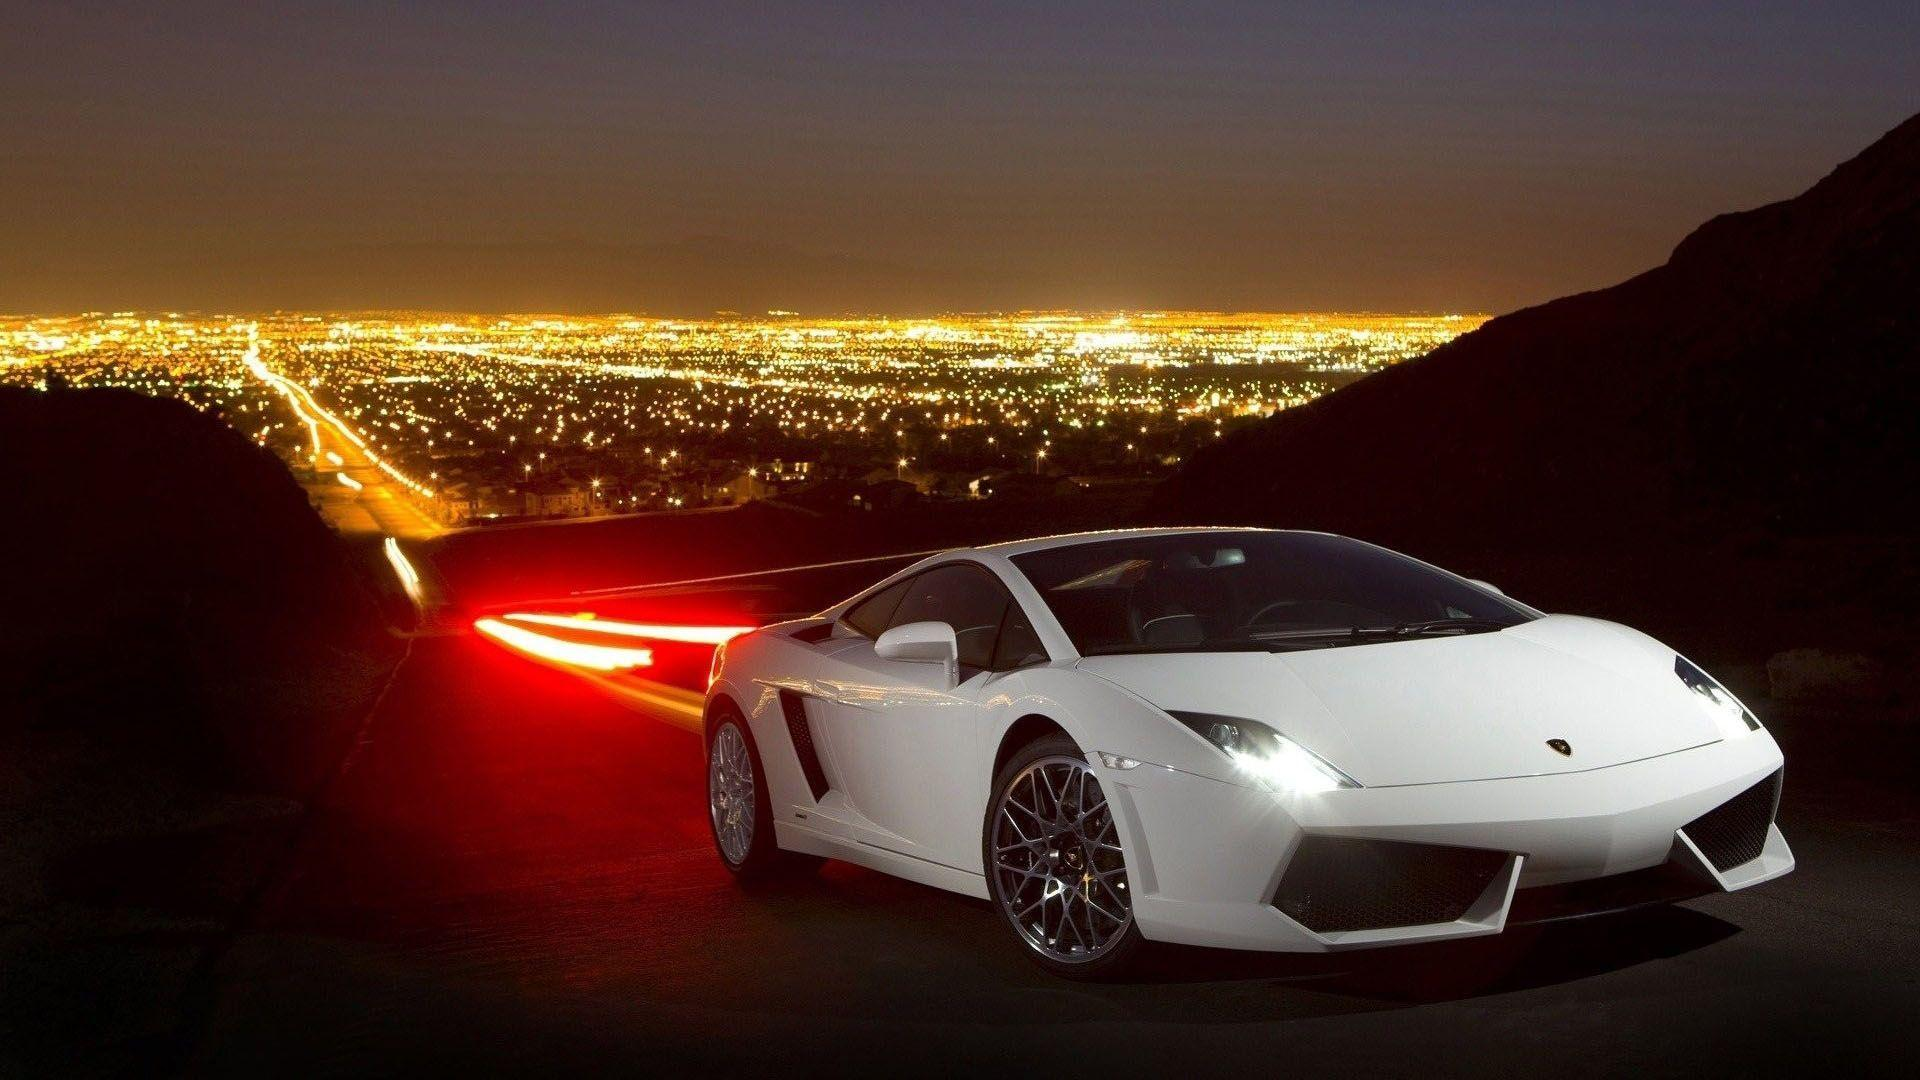 Car Wallpapers Lamborghini   Cars Wallpapers (72) Ilikewalls.